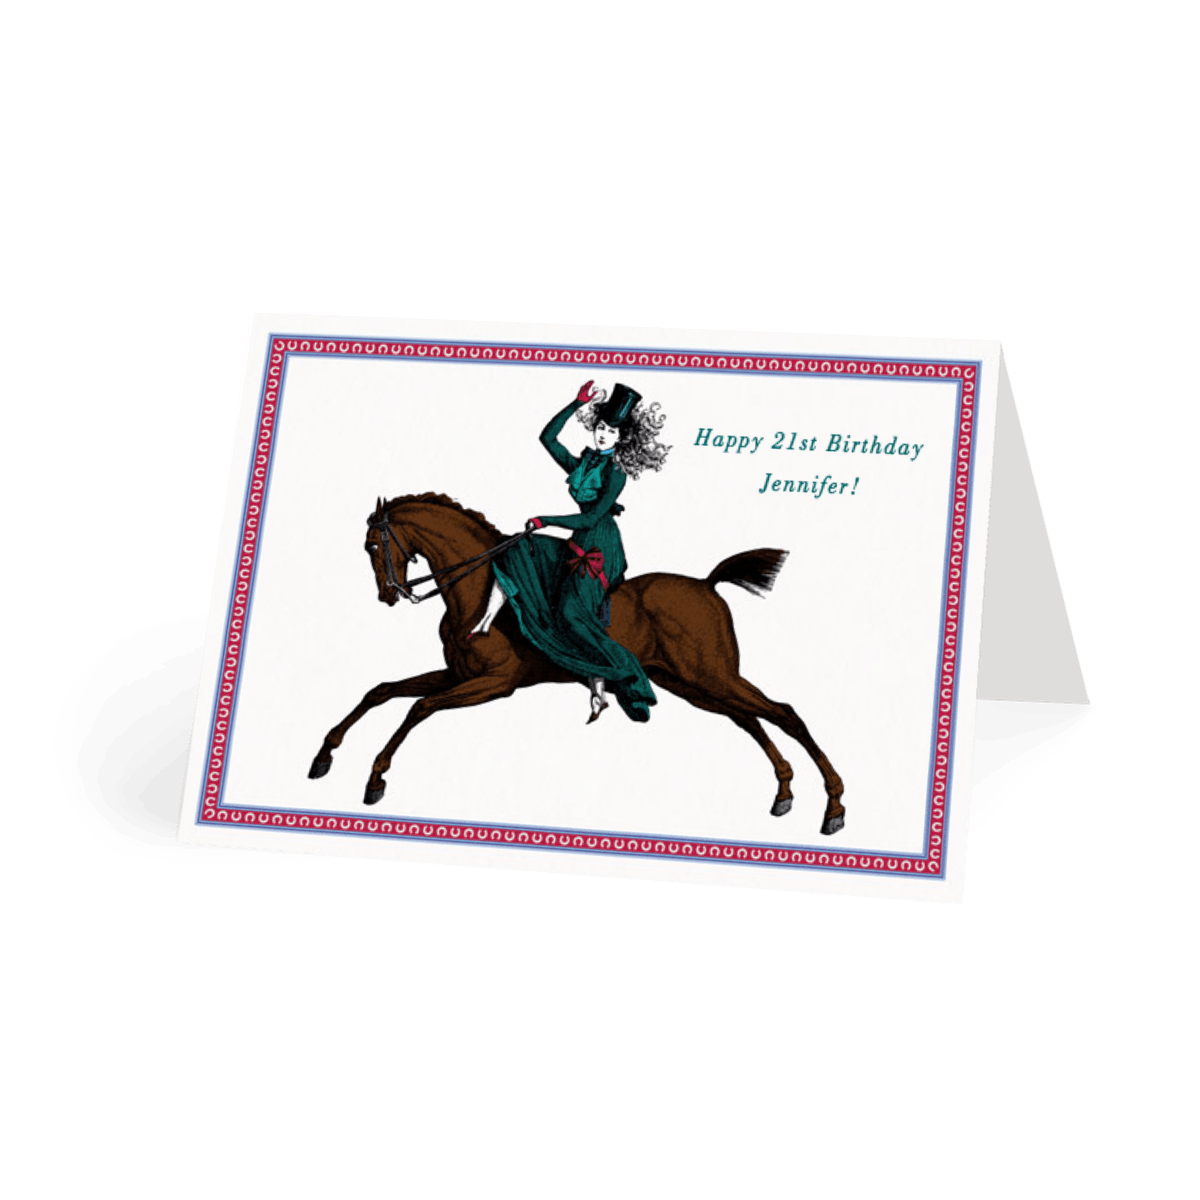 Https%3a%2f%2fwww.papier.com%2fproduct image%2f13074%2f14%2flady on her horse 3297 avant 1480609963.png?ixlib=rb 1.1